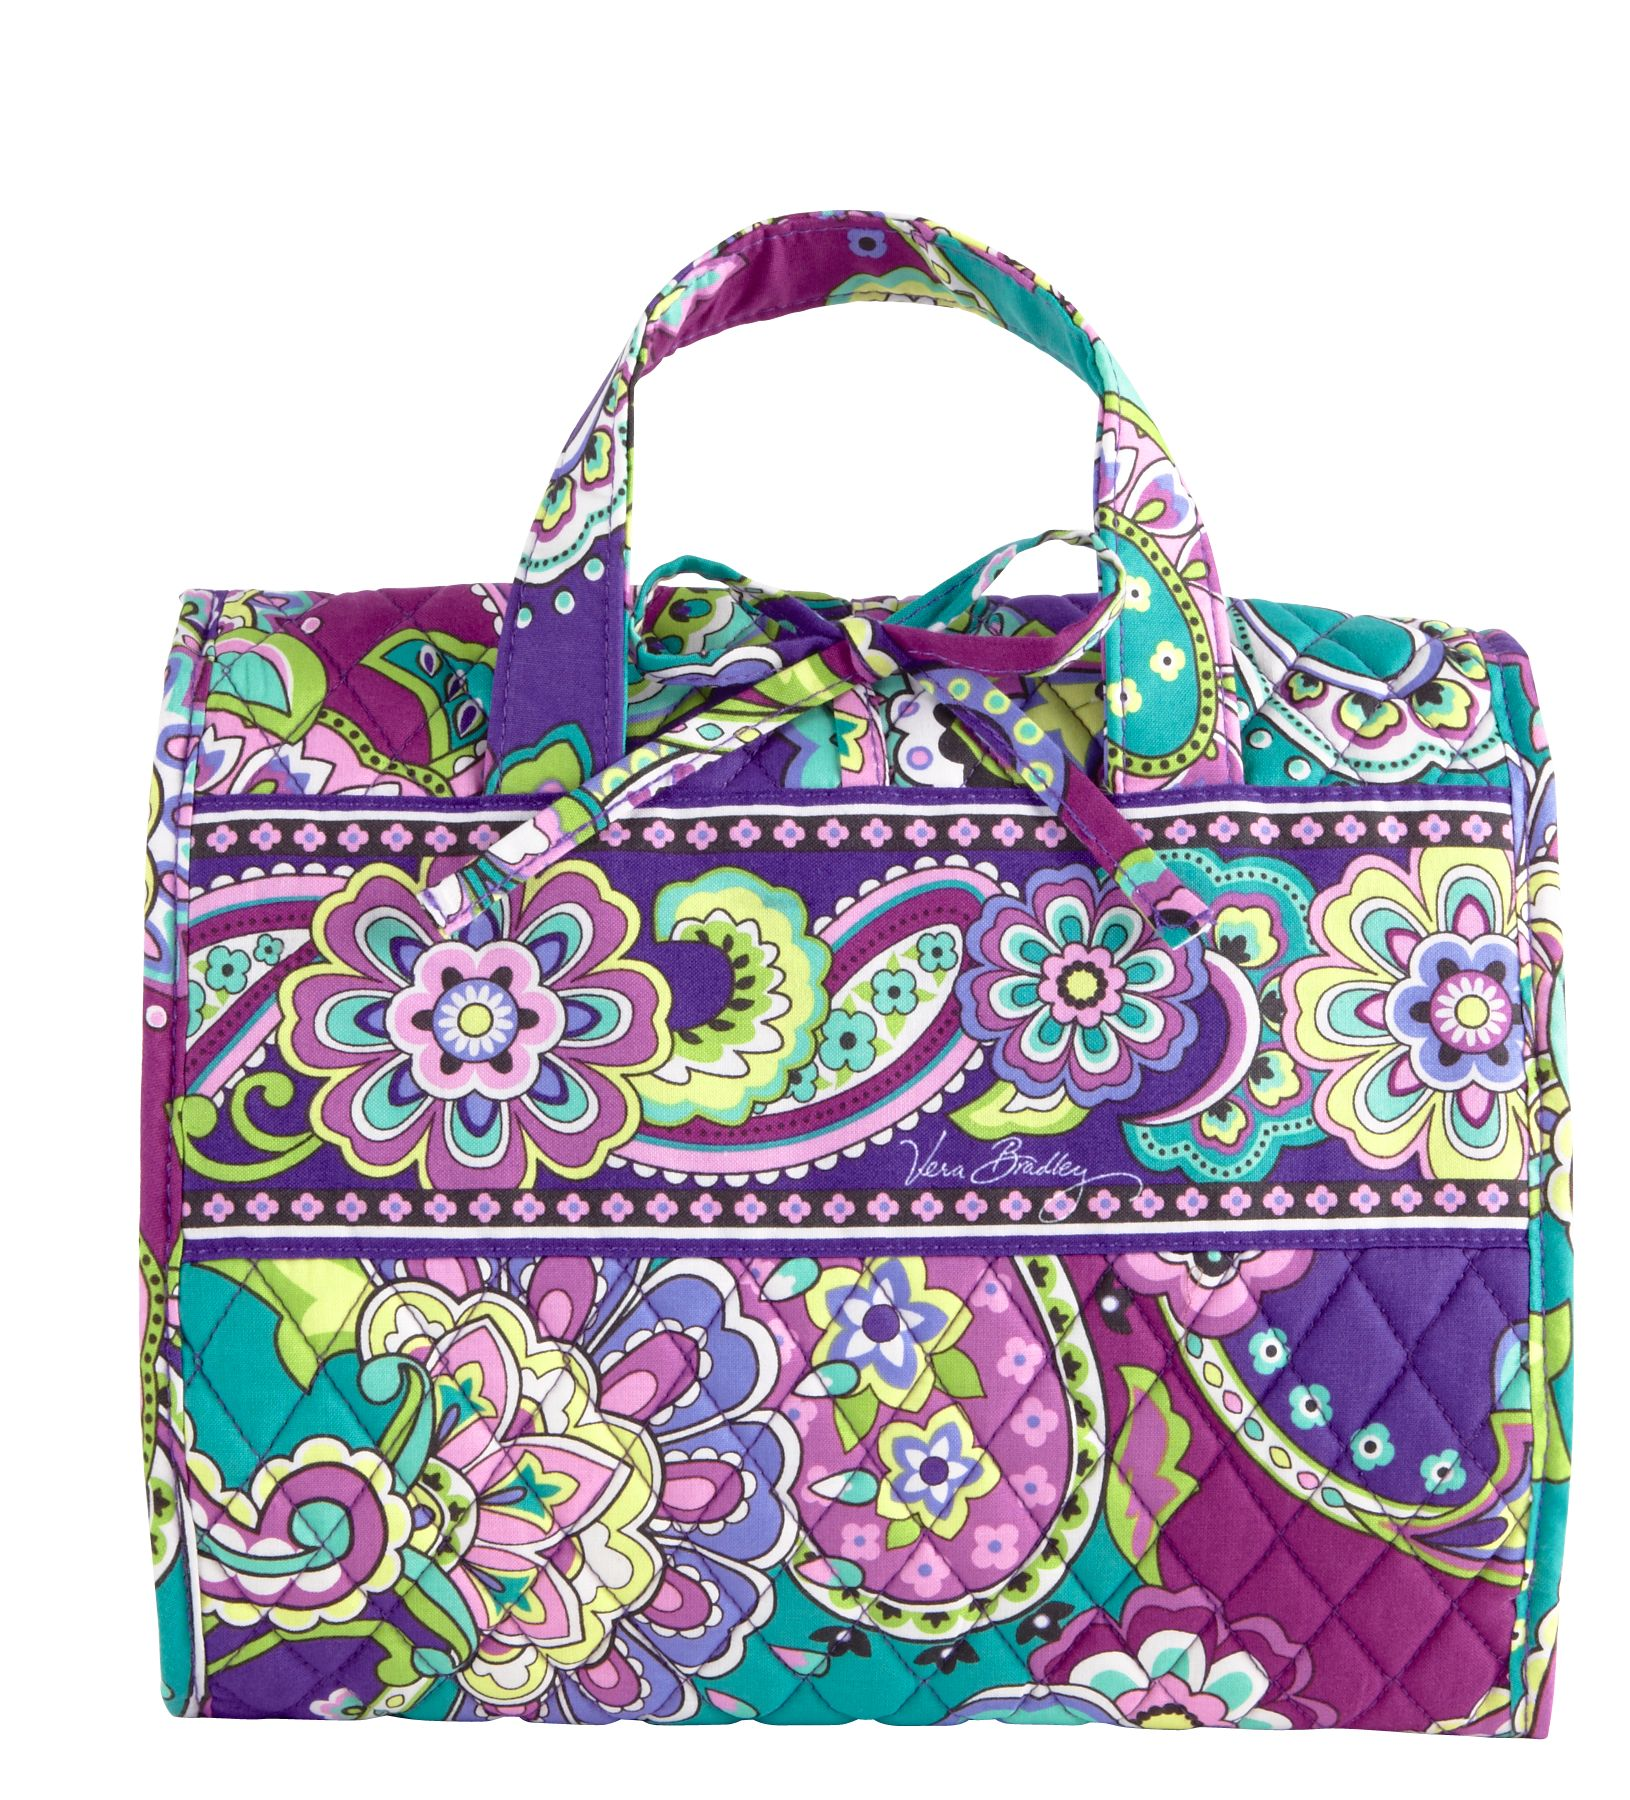 Vera Bradley Hanging Travel Organizer in Heather